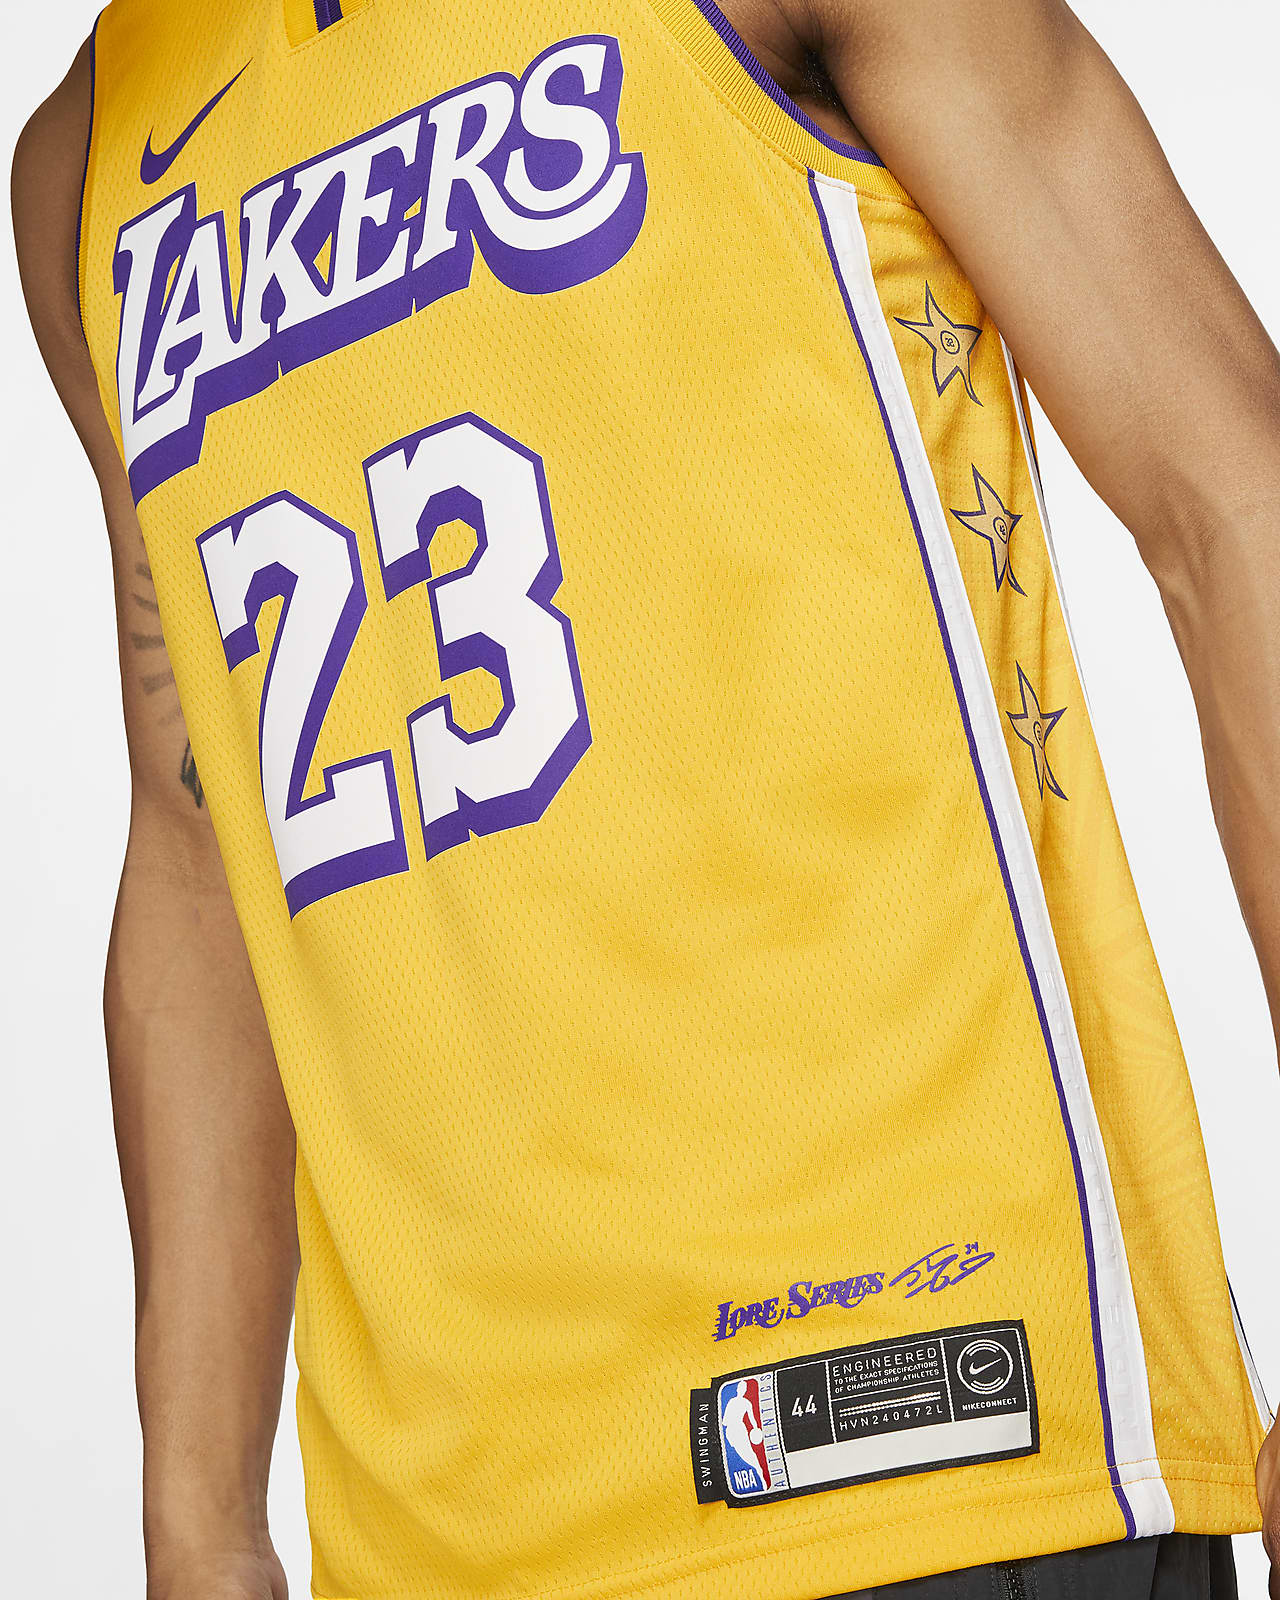 lebron james city jersey lakers Off 55% - www.bashhguidelines.org